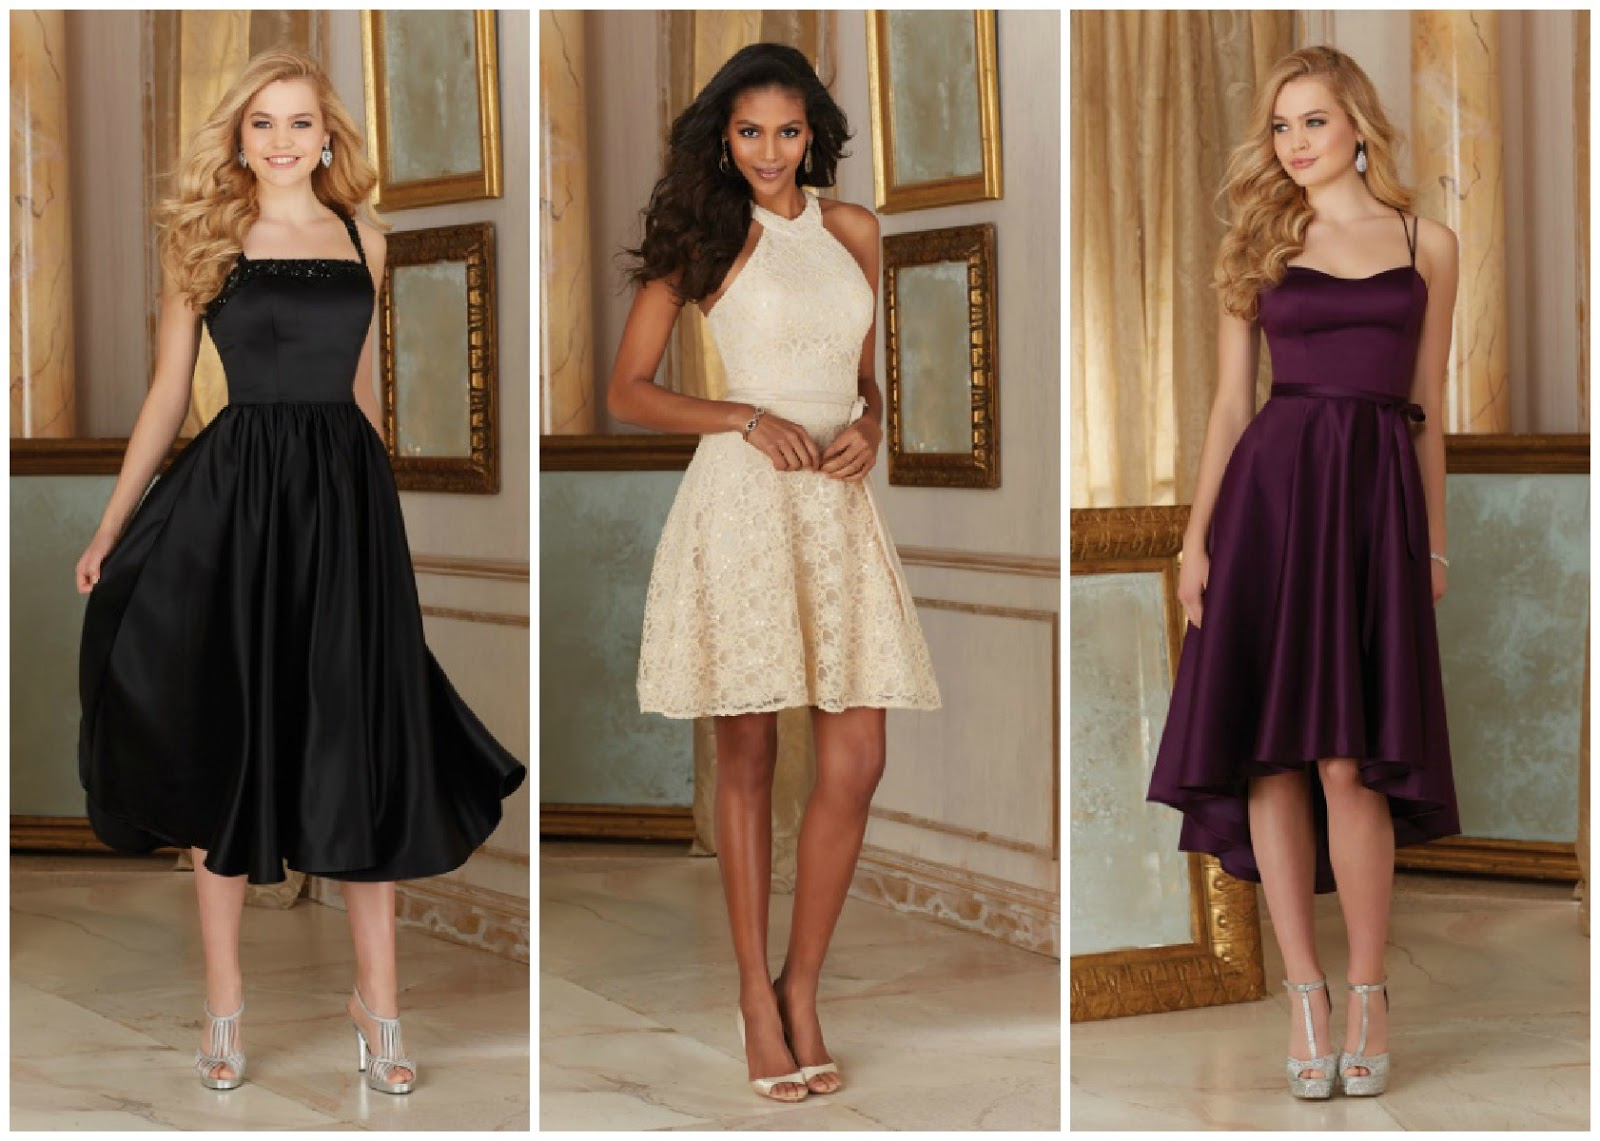 Brides of america online store august 2016 morilee designs the most fabulous bridesmaid dresses and bridal gowns and brides of america is the place to find all of their gorgeous collections ombrellifo Images